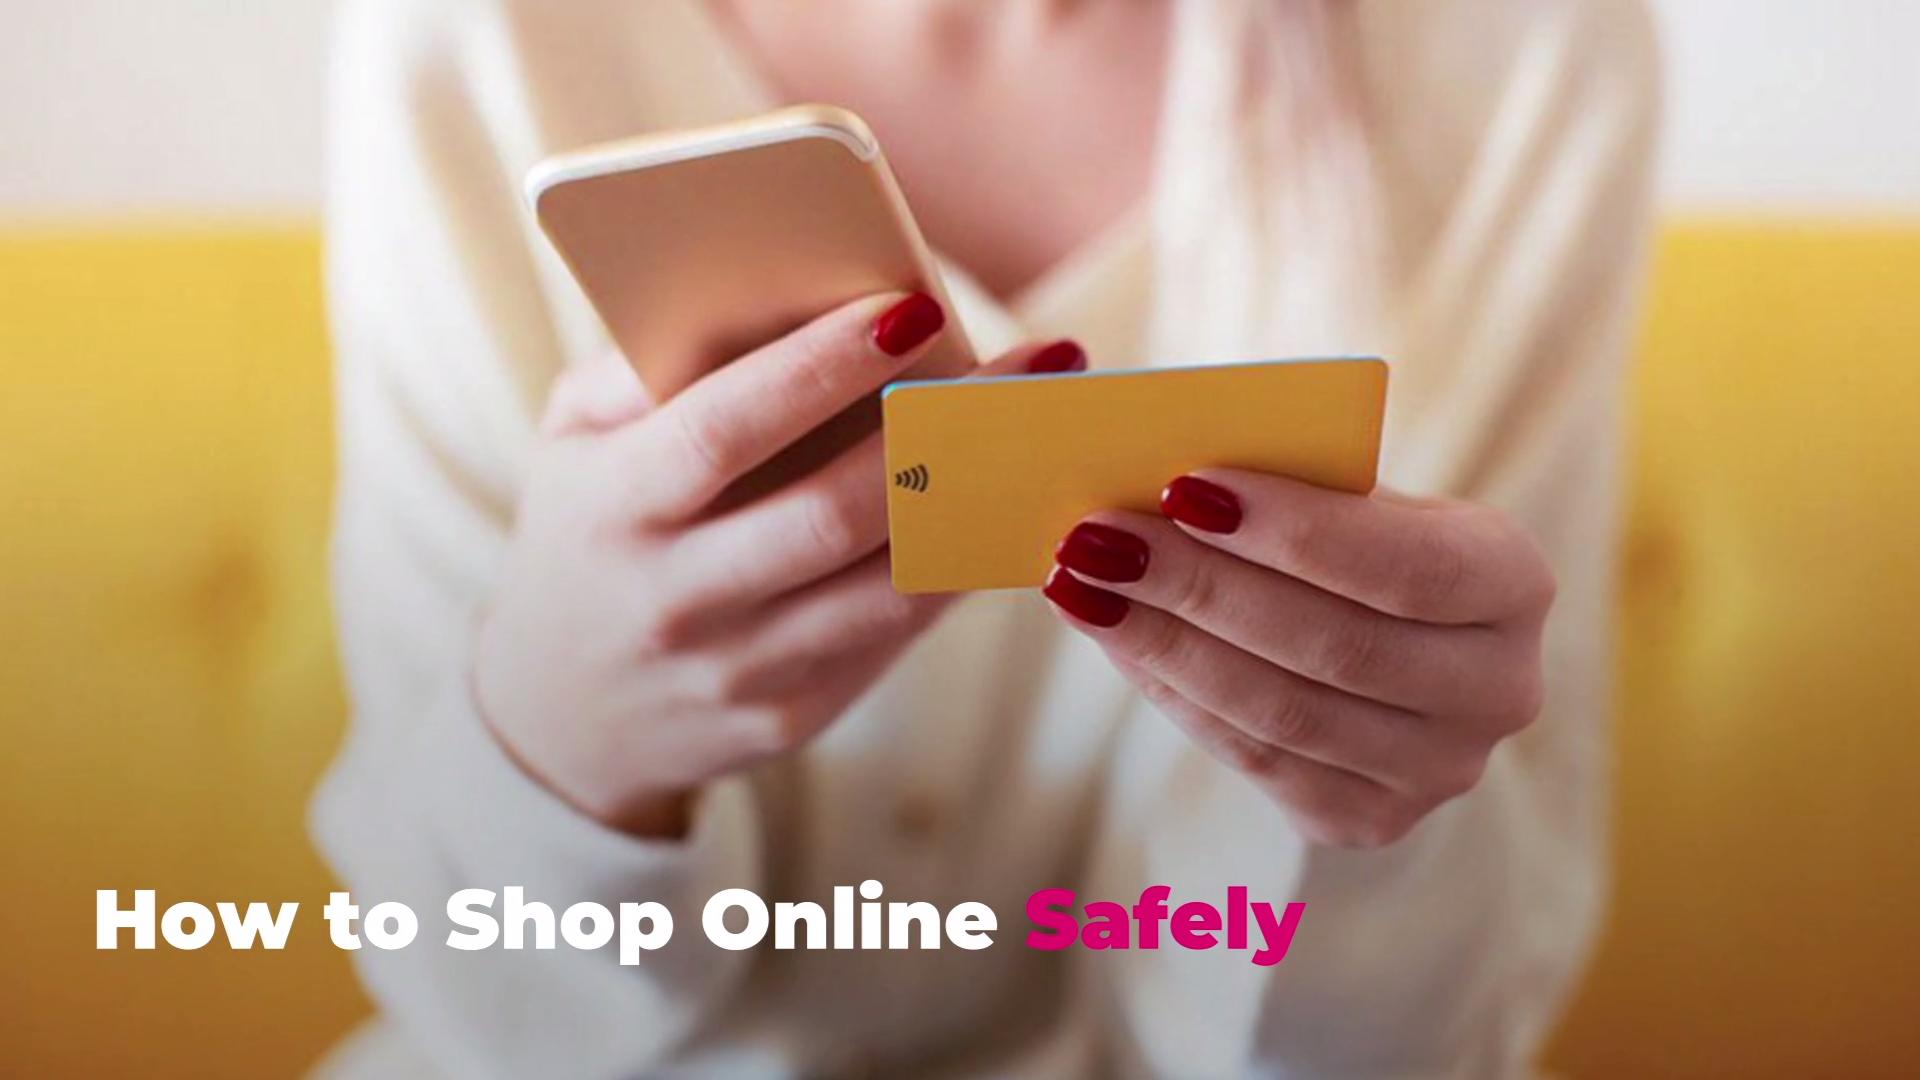 Stay Smart When Shopping On The Internet